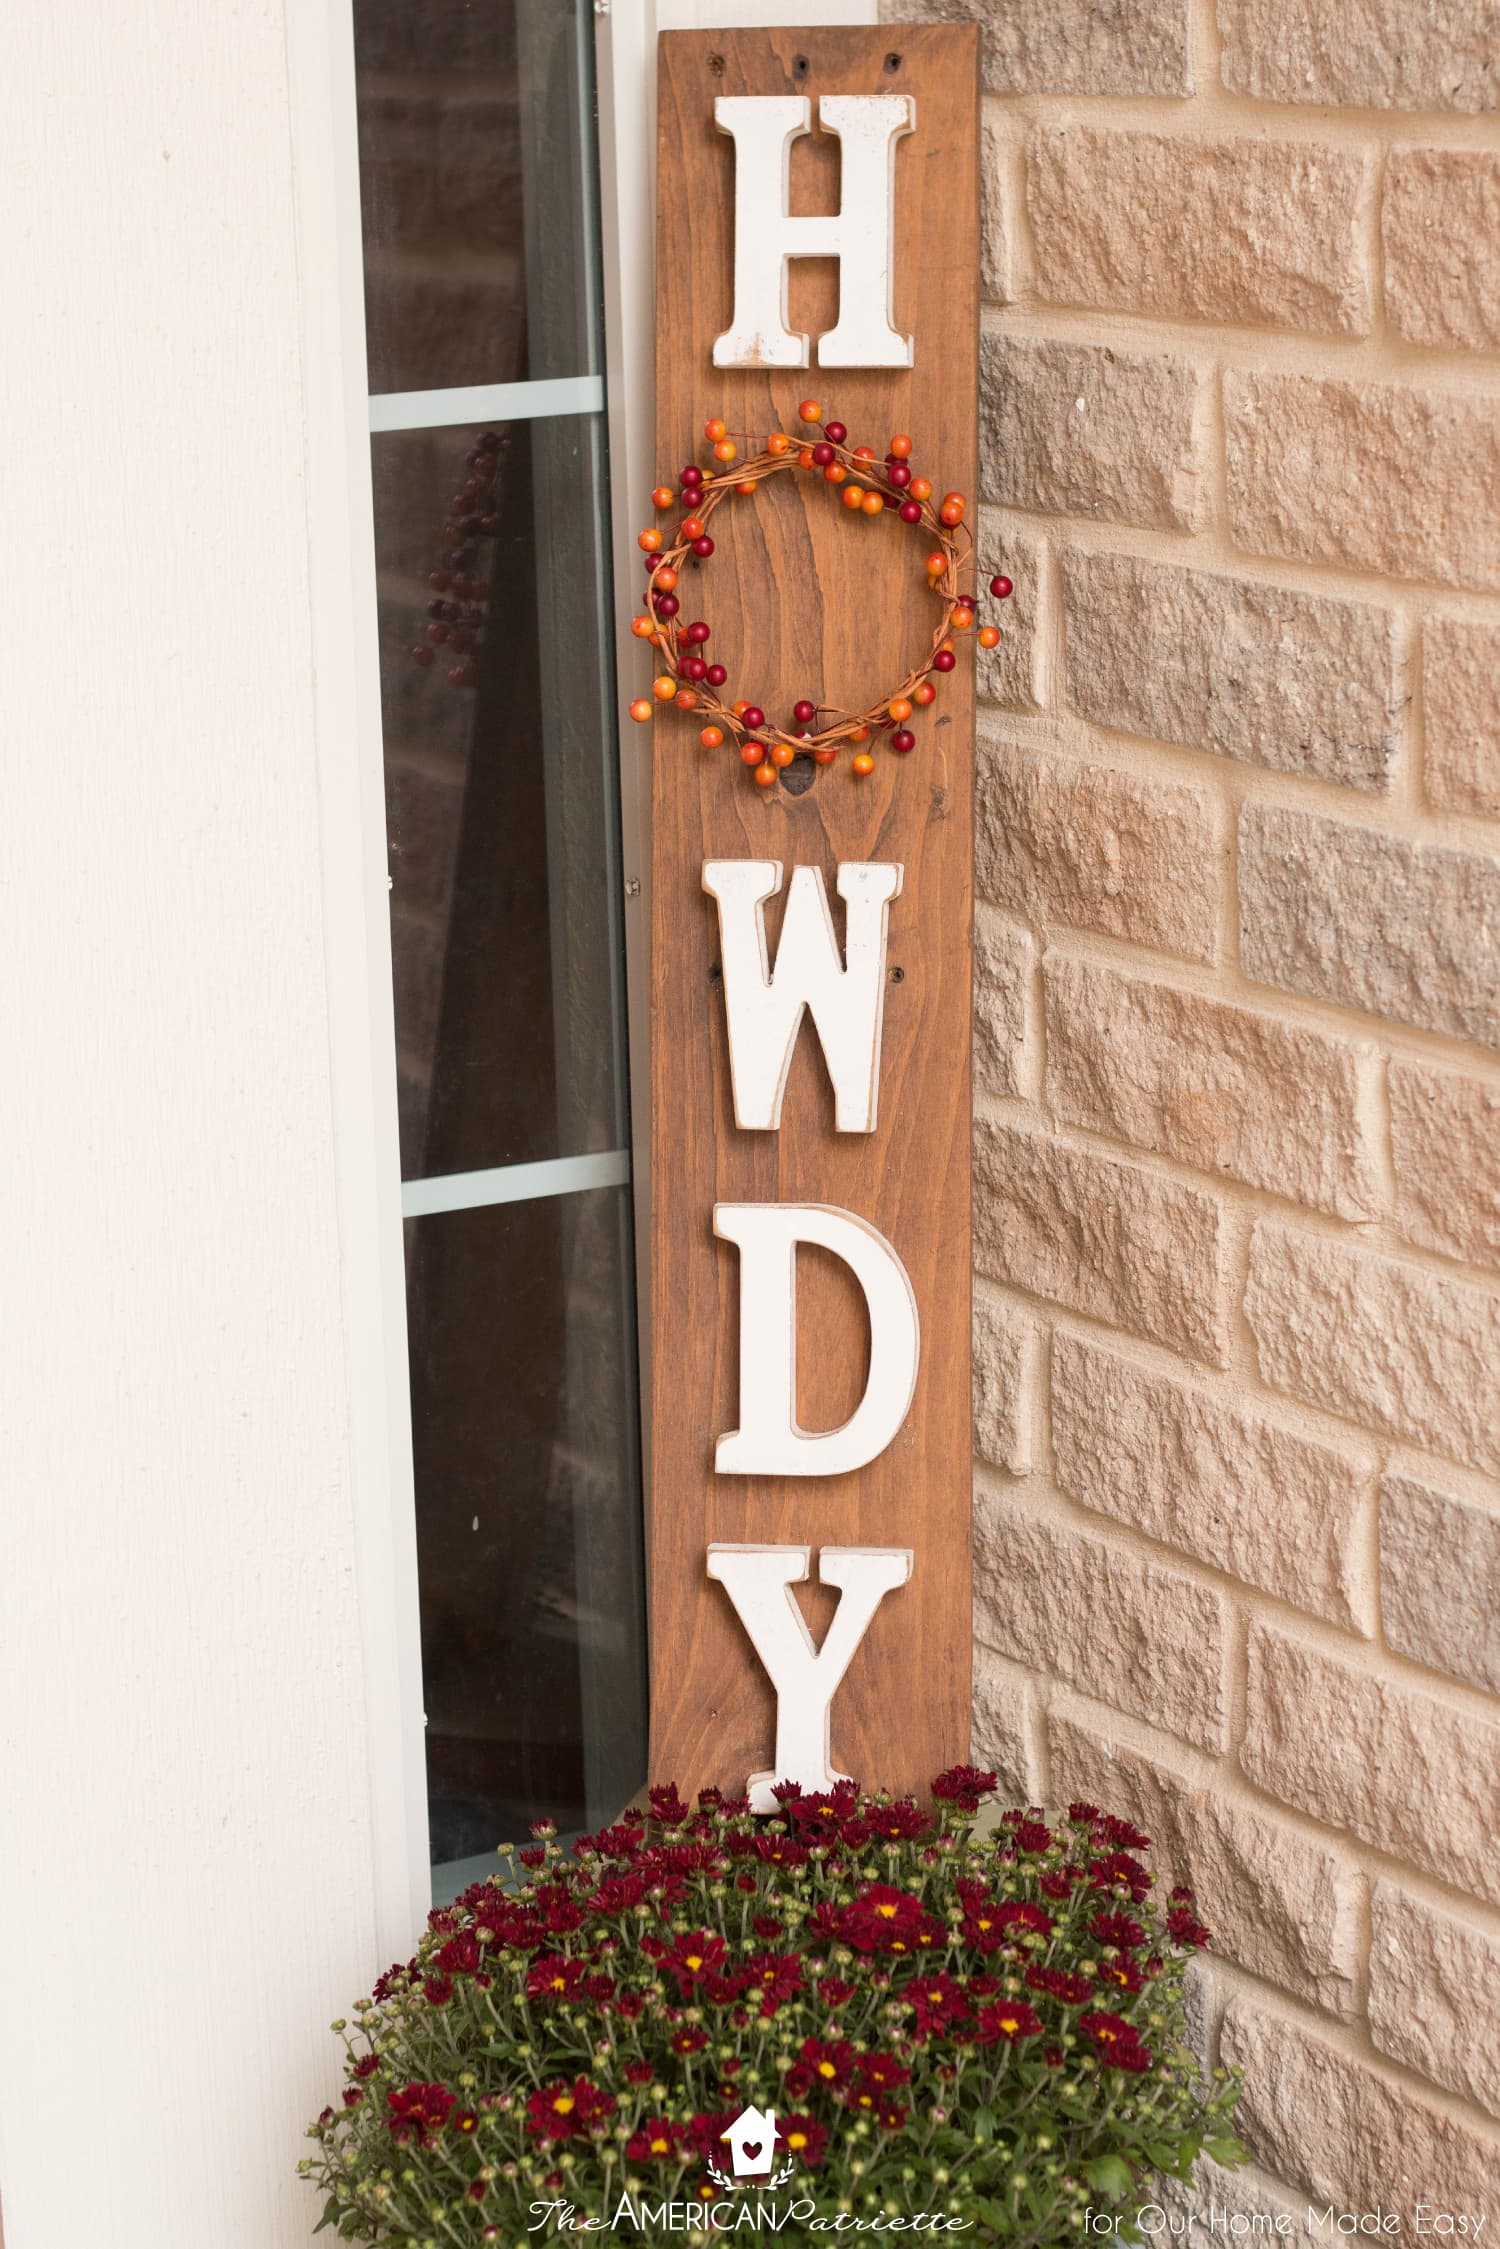 This wood Howdy sign has small pops of color